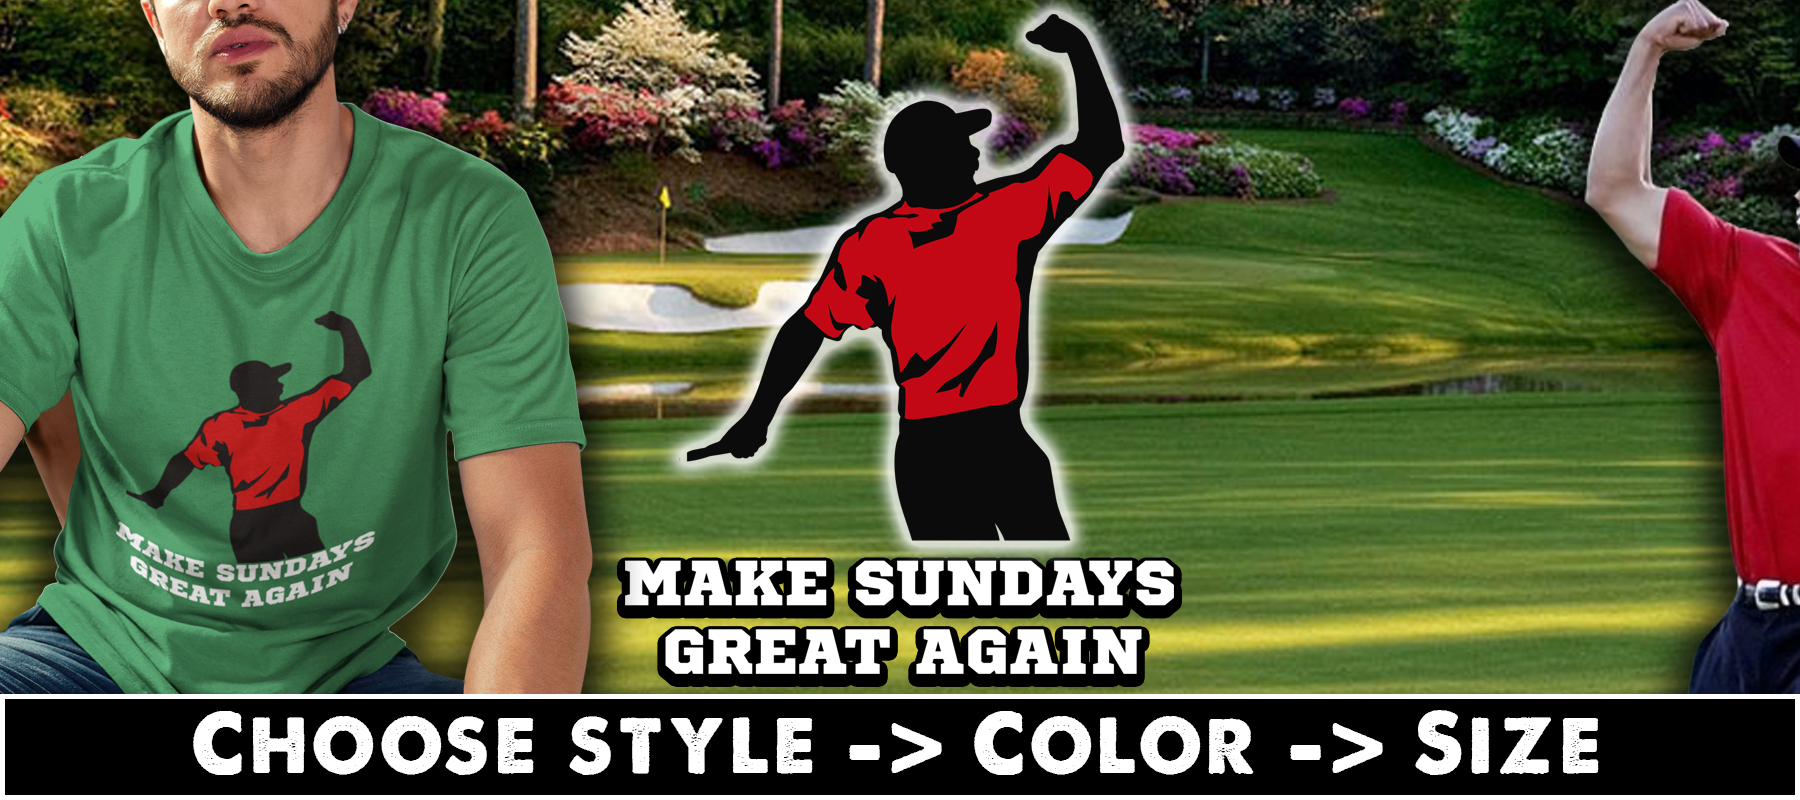 Make Sundays Great Again T-shirts, Hoodies & Mugs